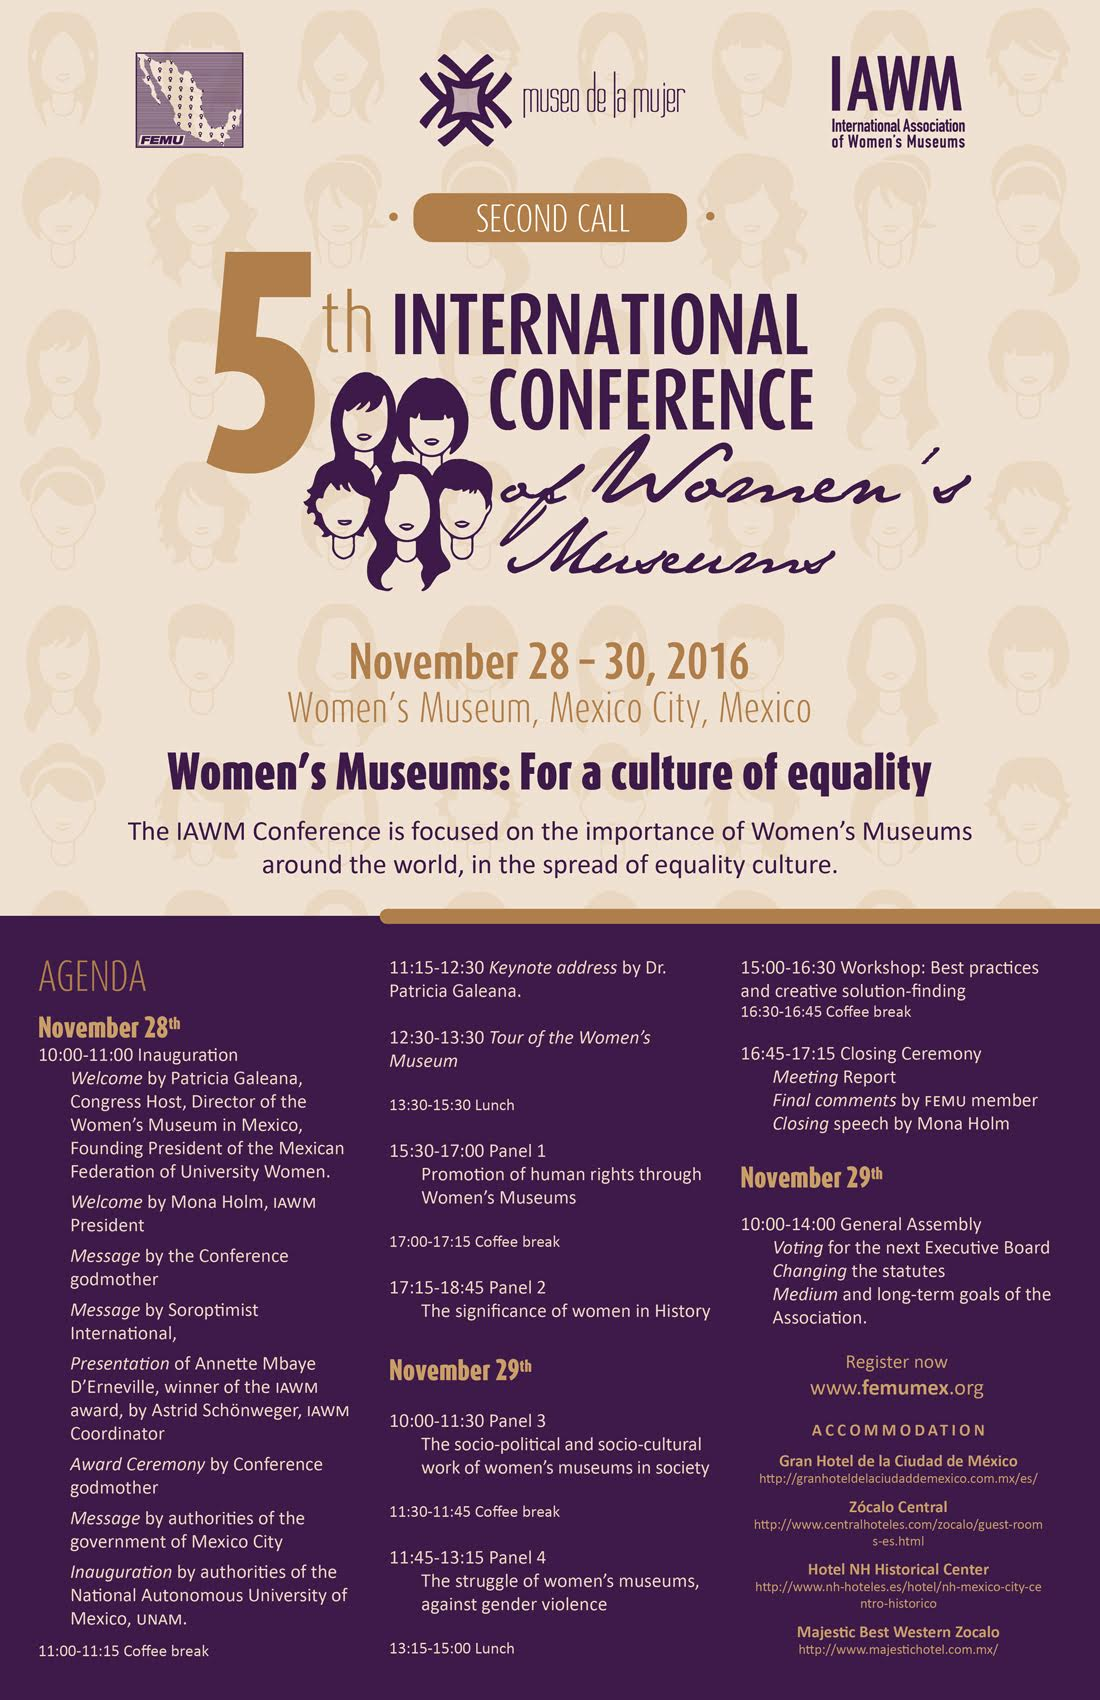 Poster for 5th International Conference of Women's Museums in Mexico City, Mexico